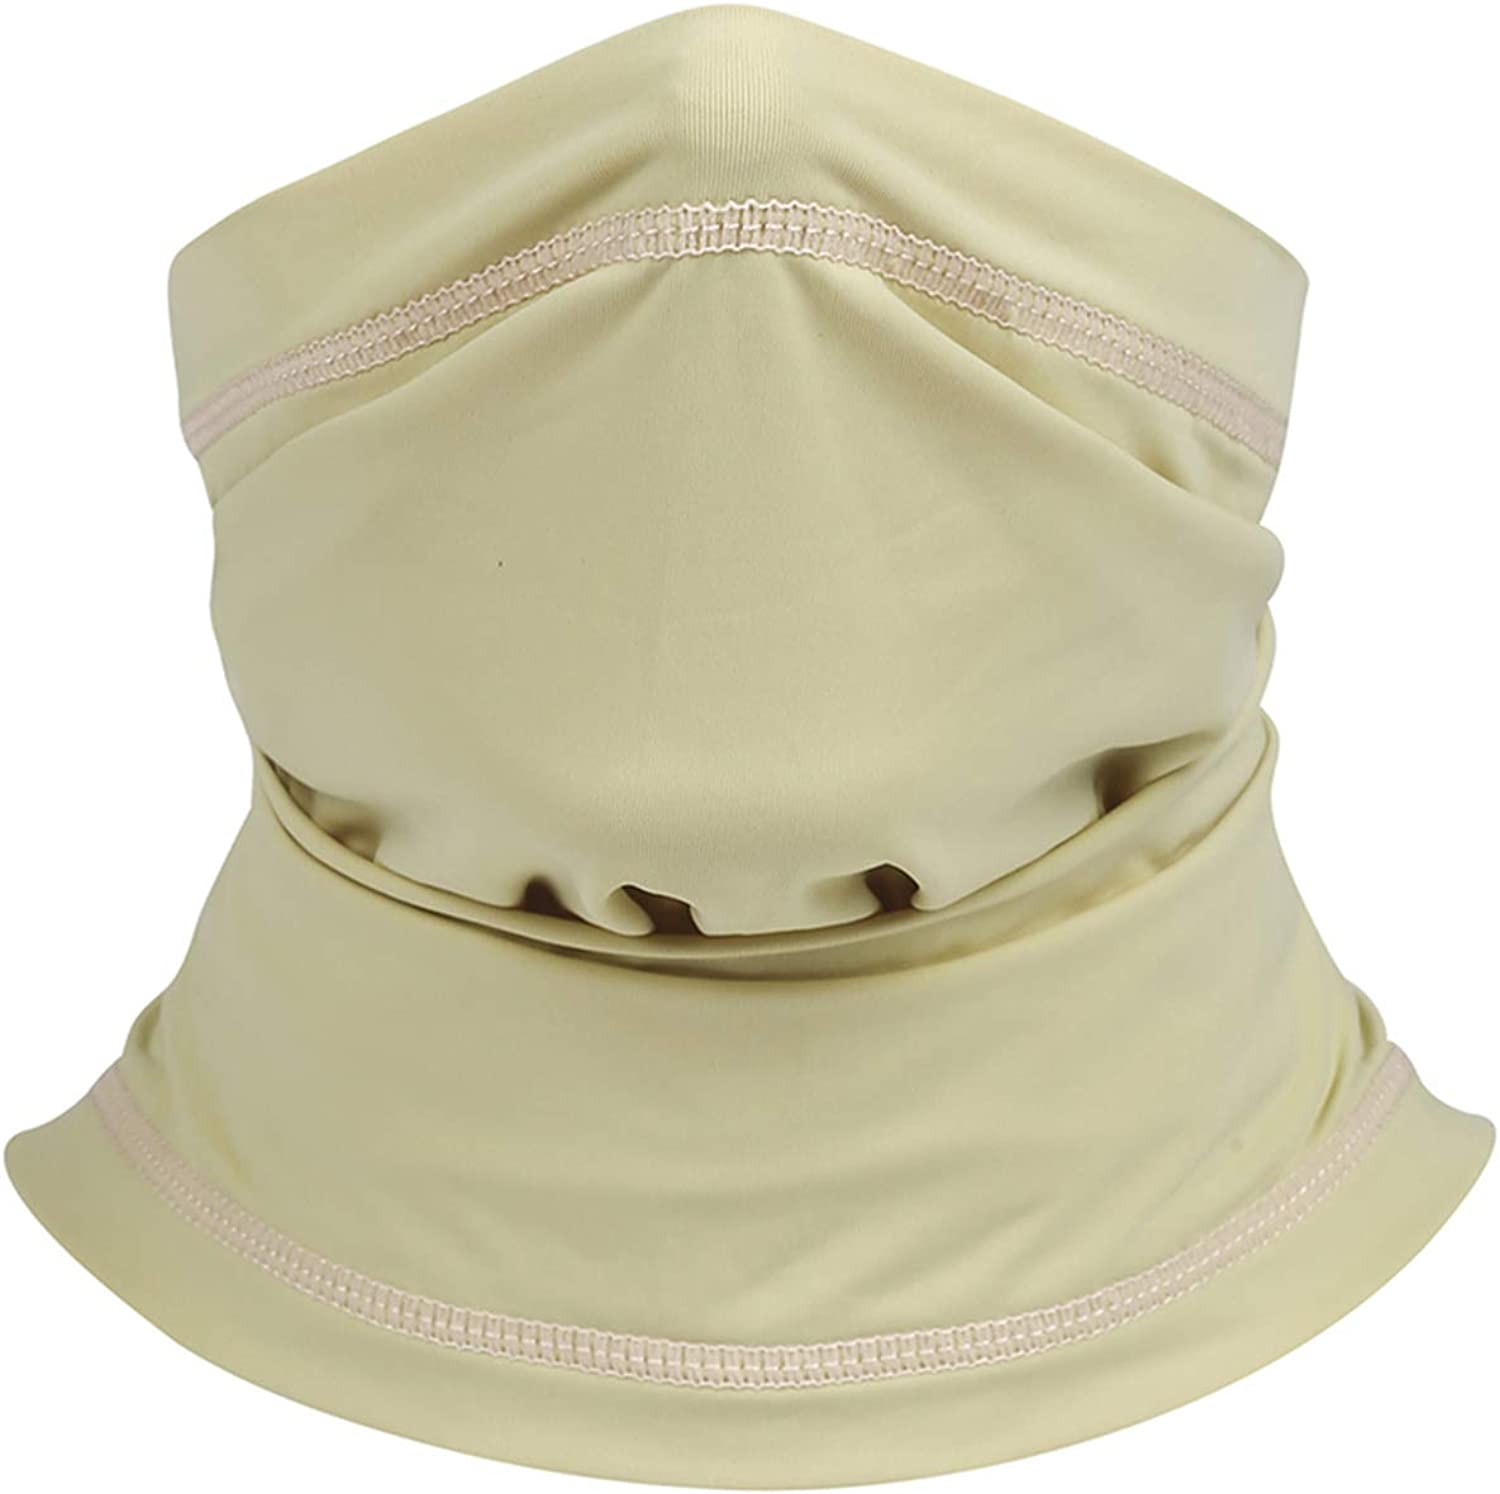 Cooling Neck Gaiter for Men Summer/Face Covering Scarf Bandana- UV Protection & Breathable Balaclava Headwear